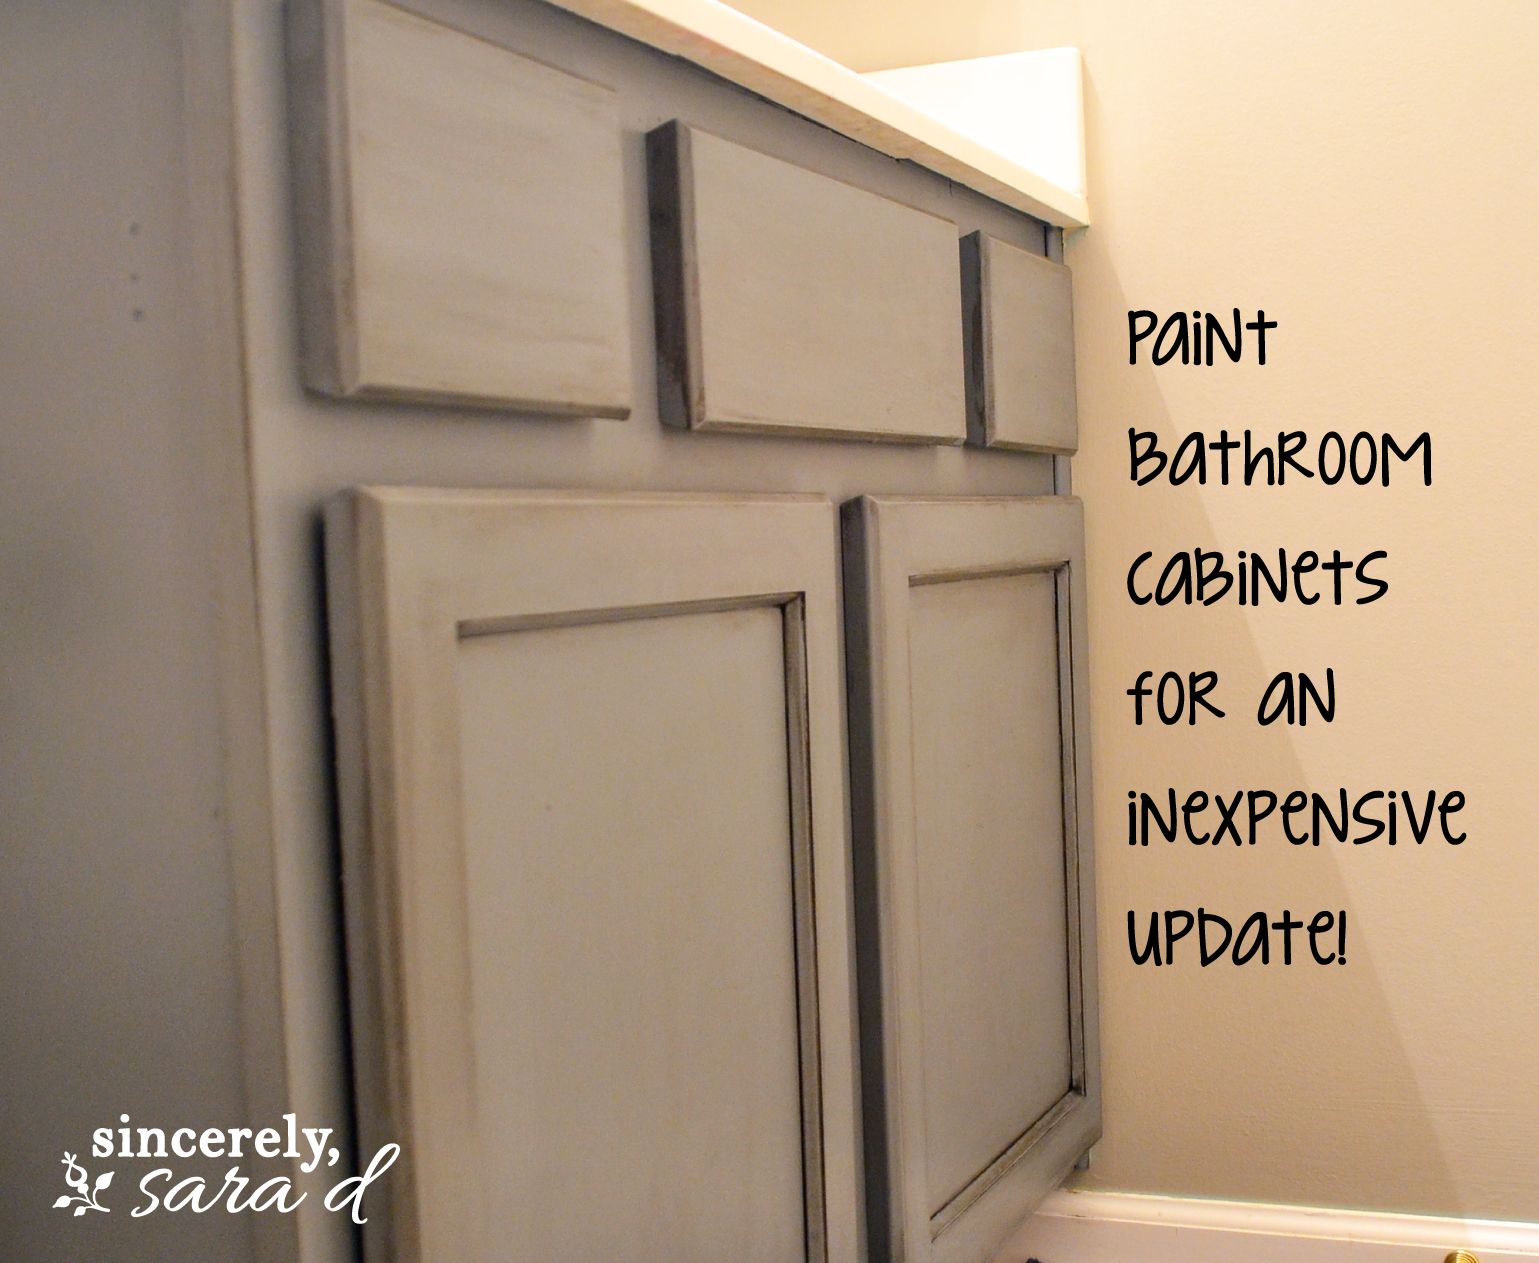 painting bathroom cabinets sincerely sara d